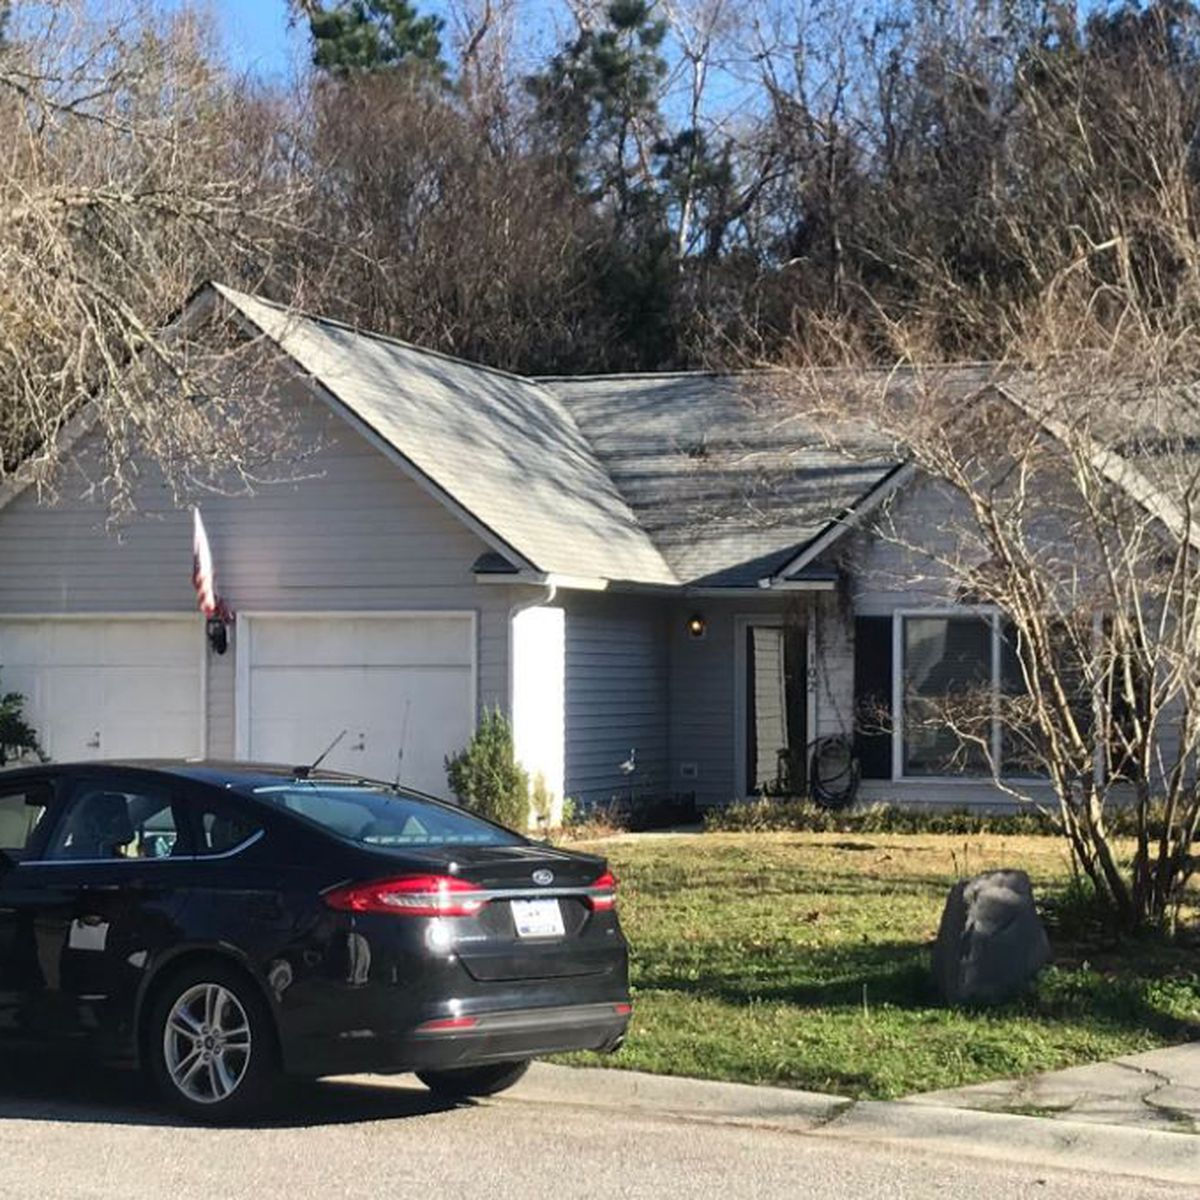 Police: Drugs may be 'motivating factor' in fatal West Ashley shooting